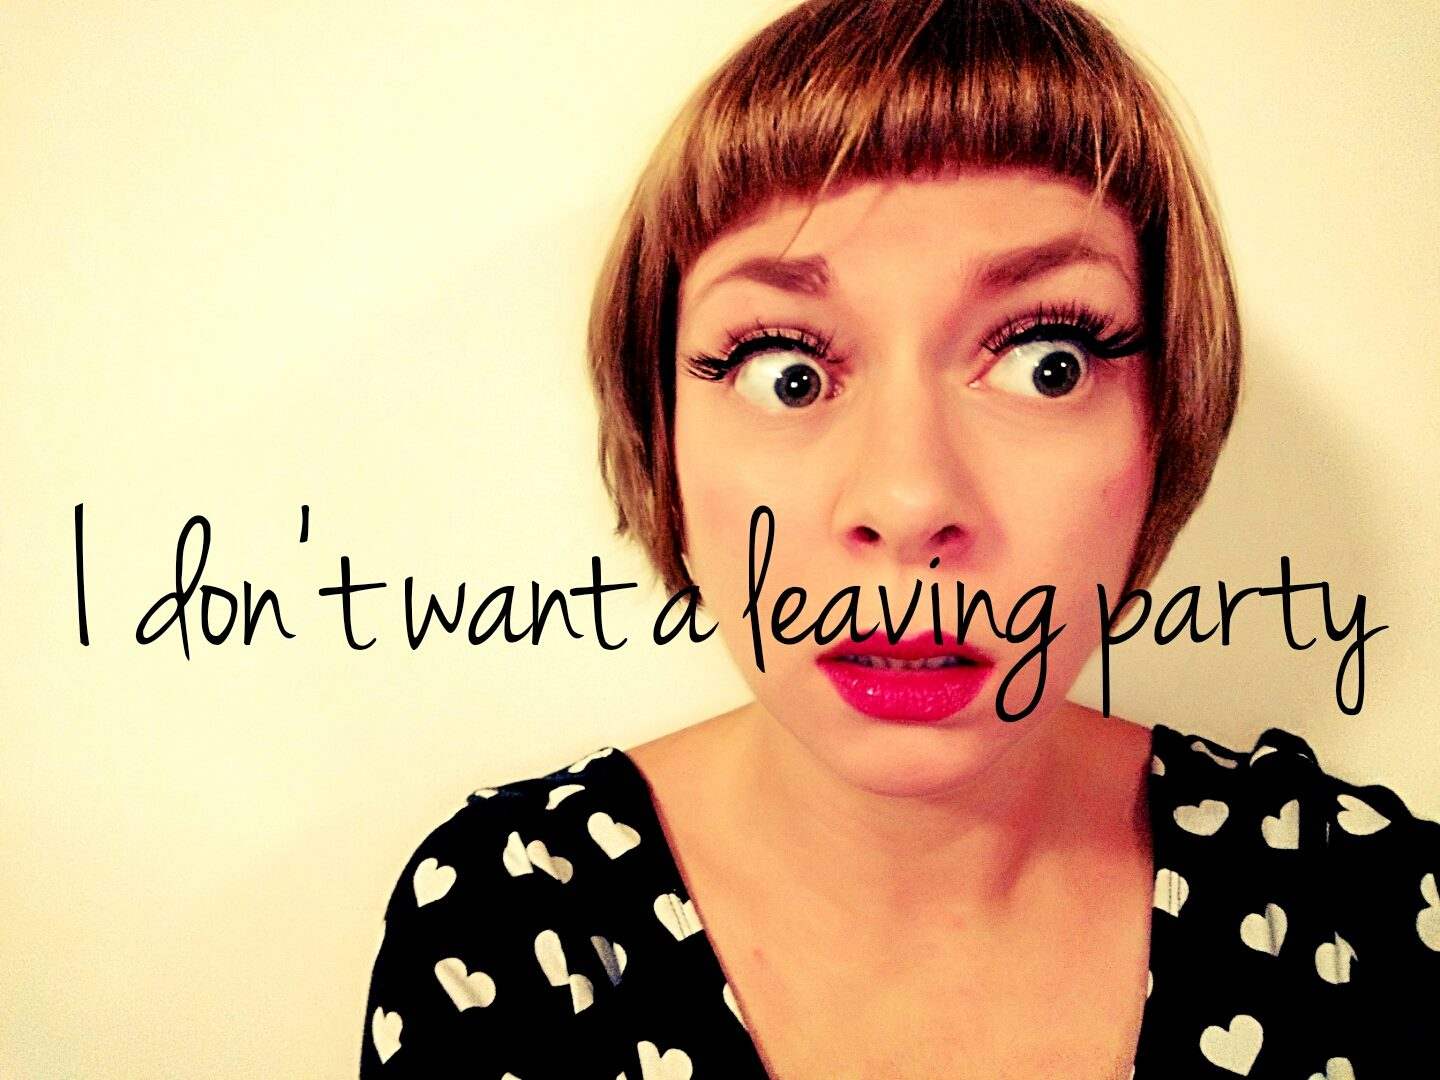 I don't want a leaving party